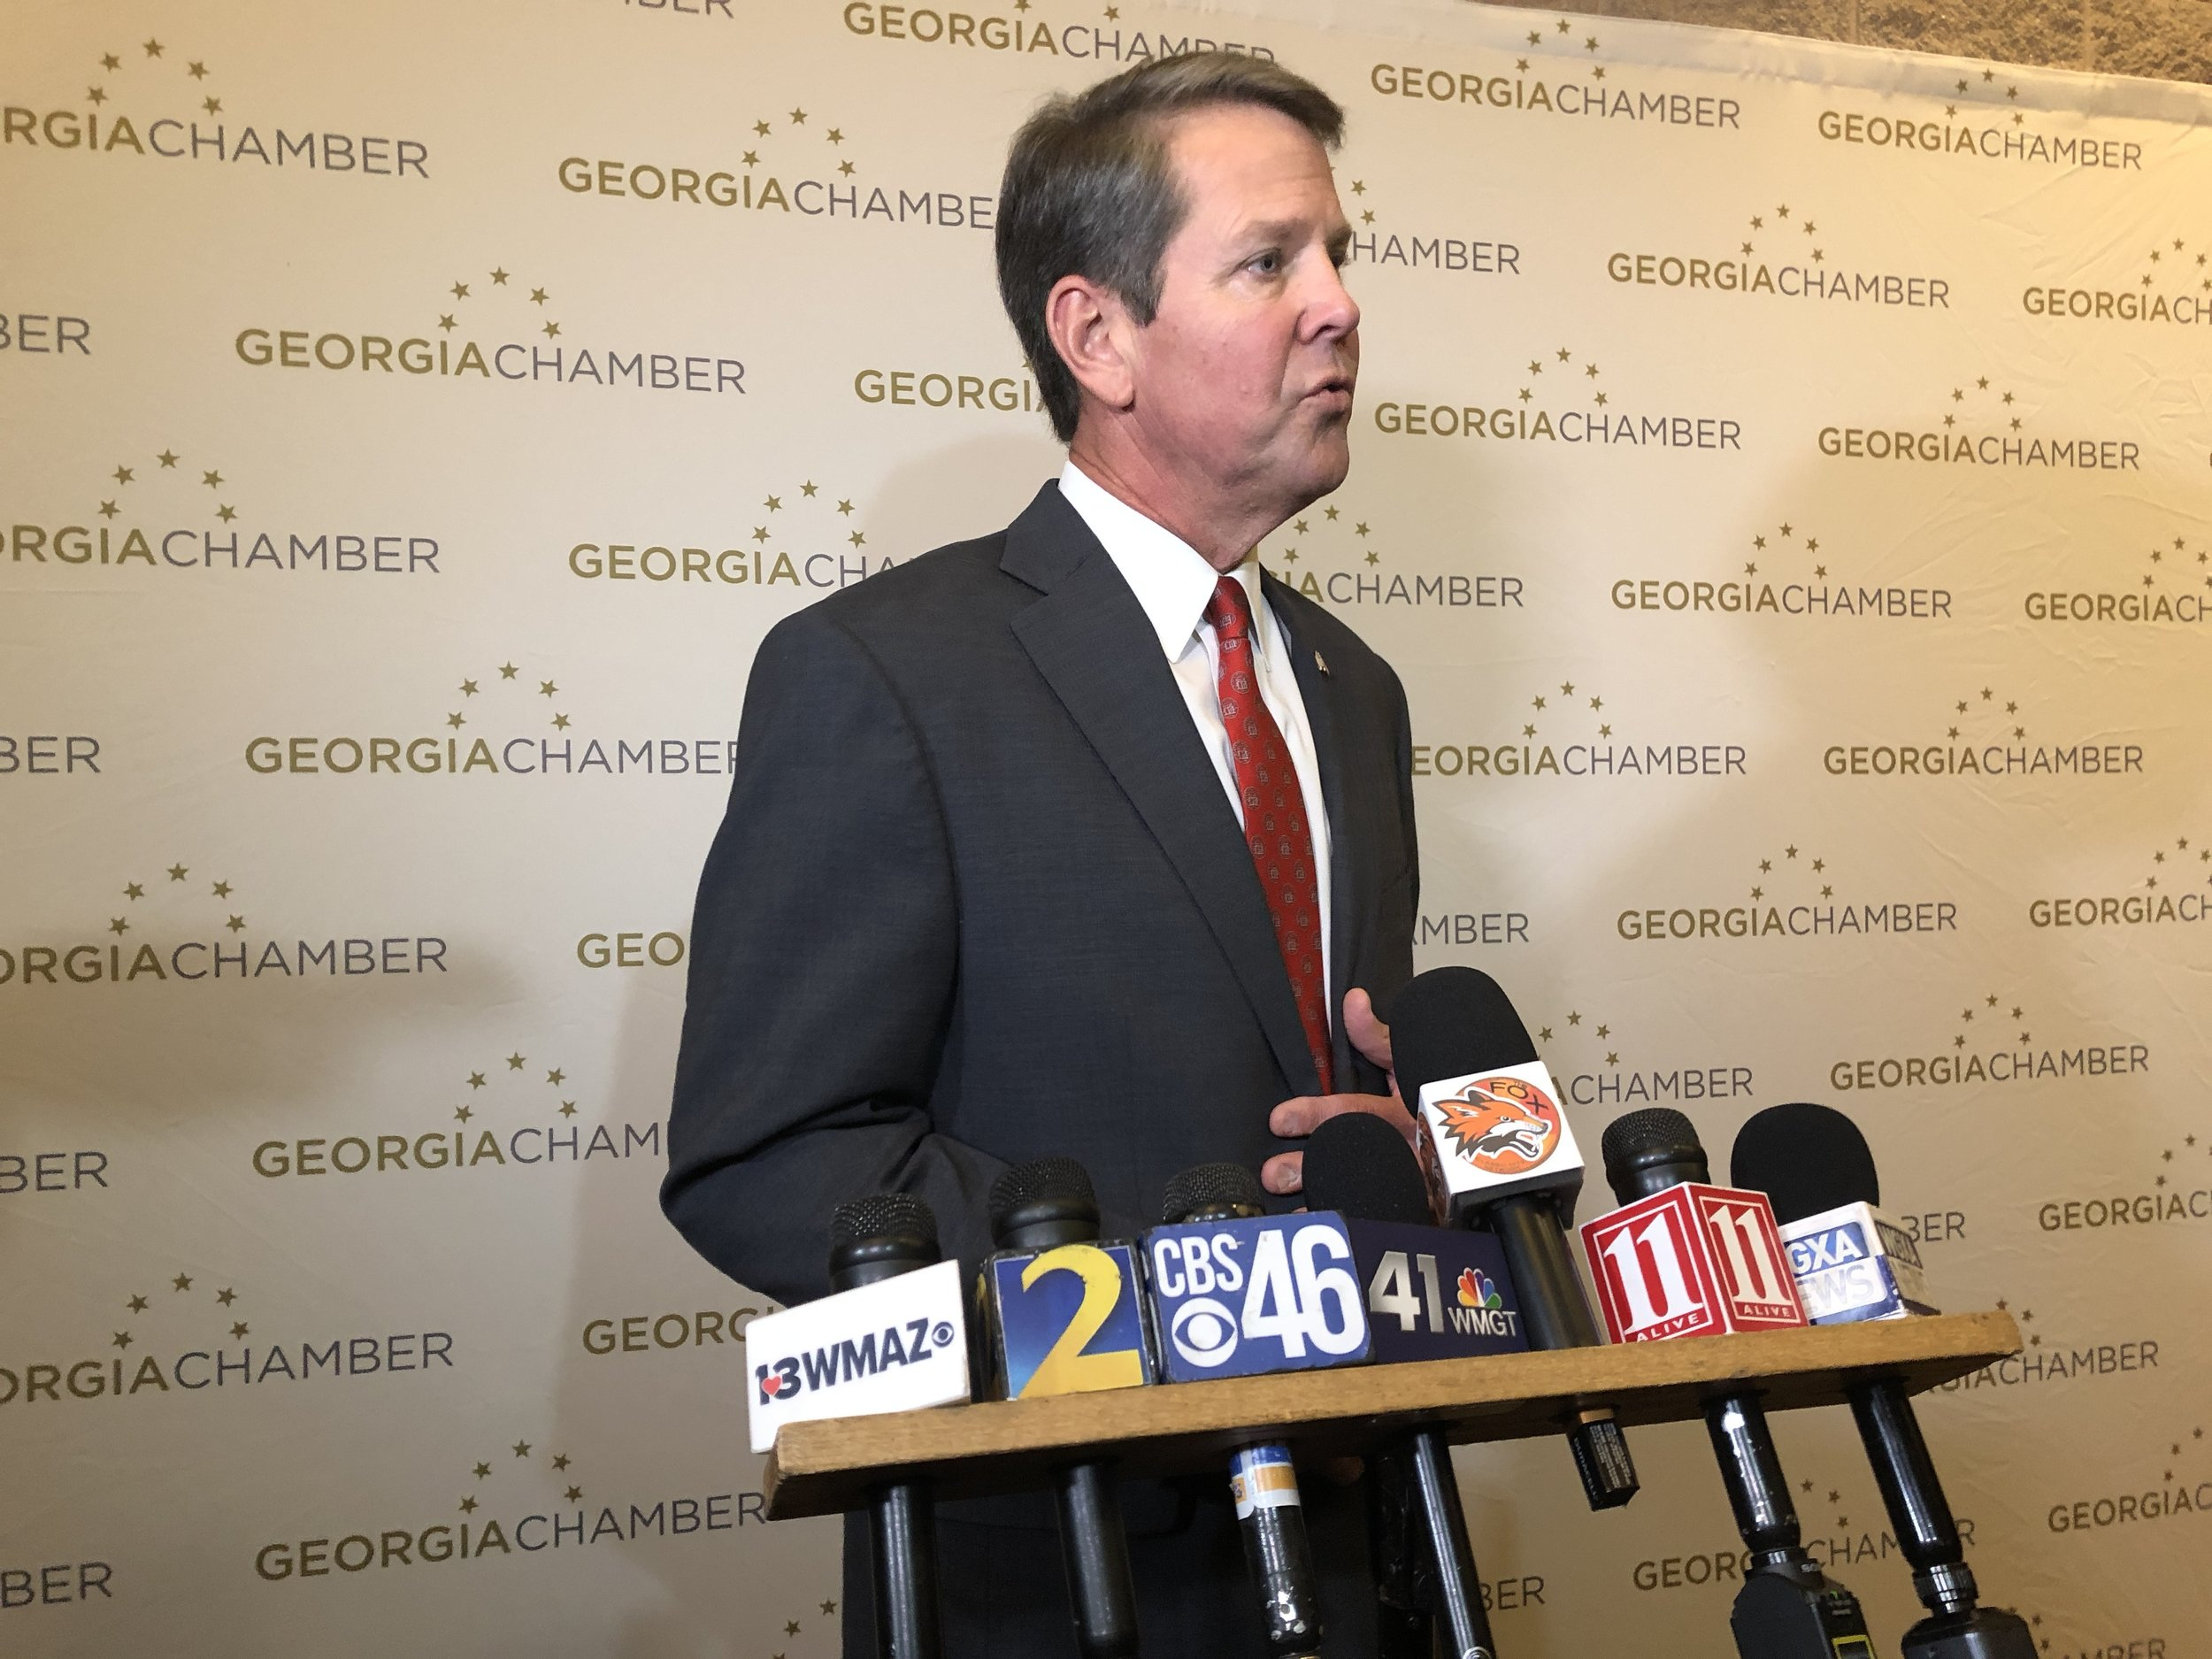 Republican candidate for governor Brian Kemp on the campaign trail in Macon